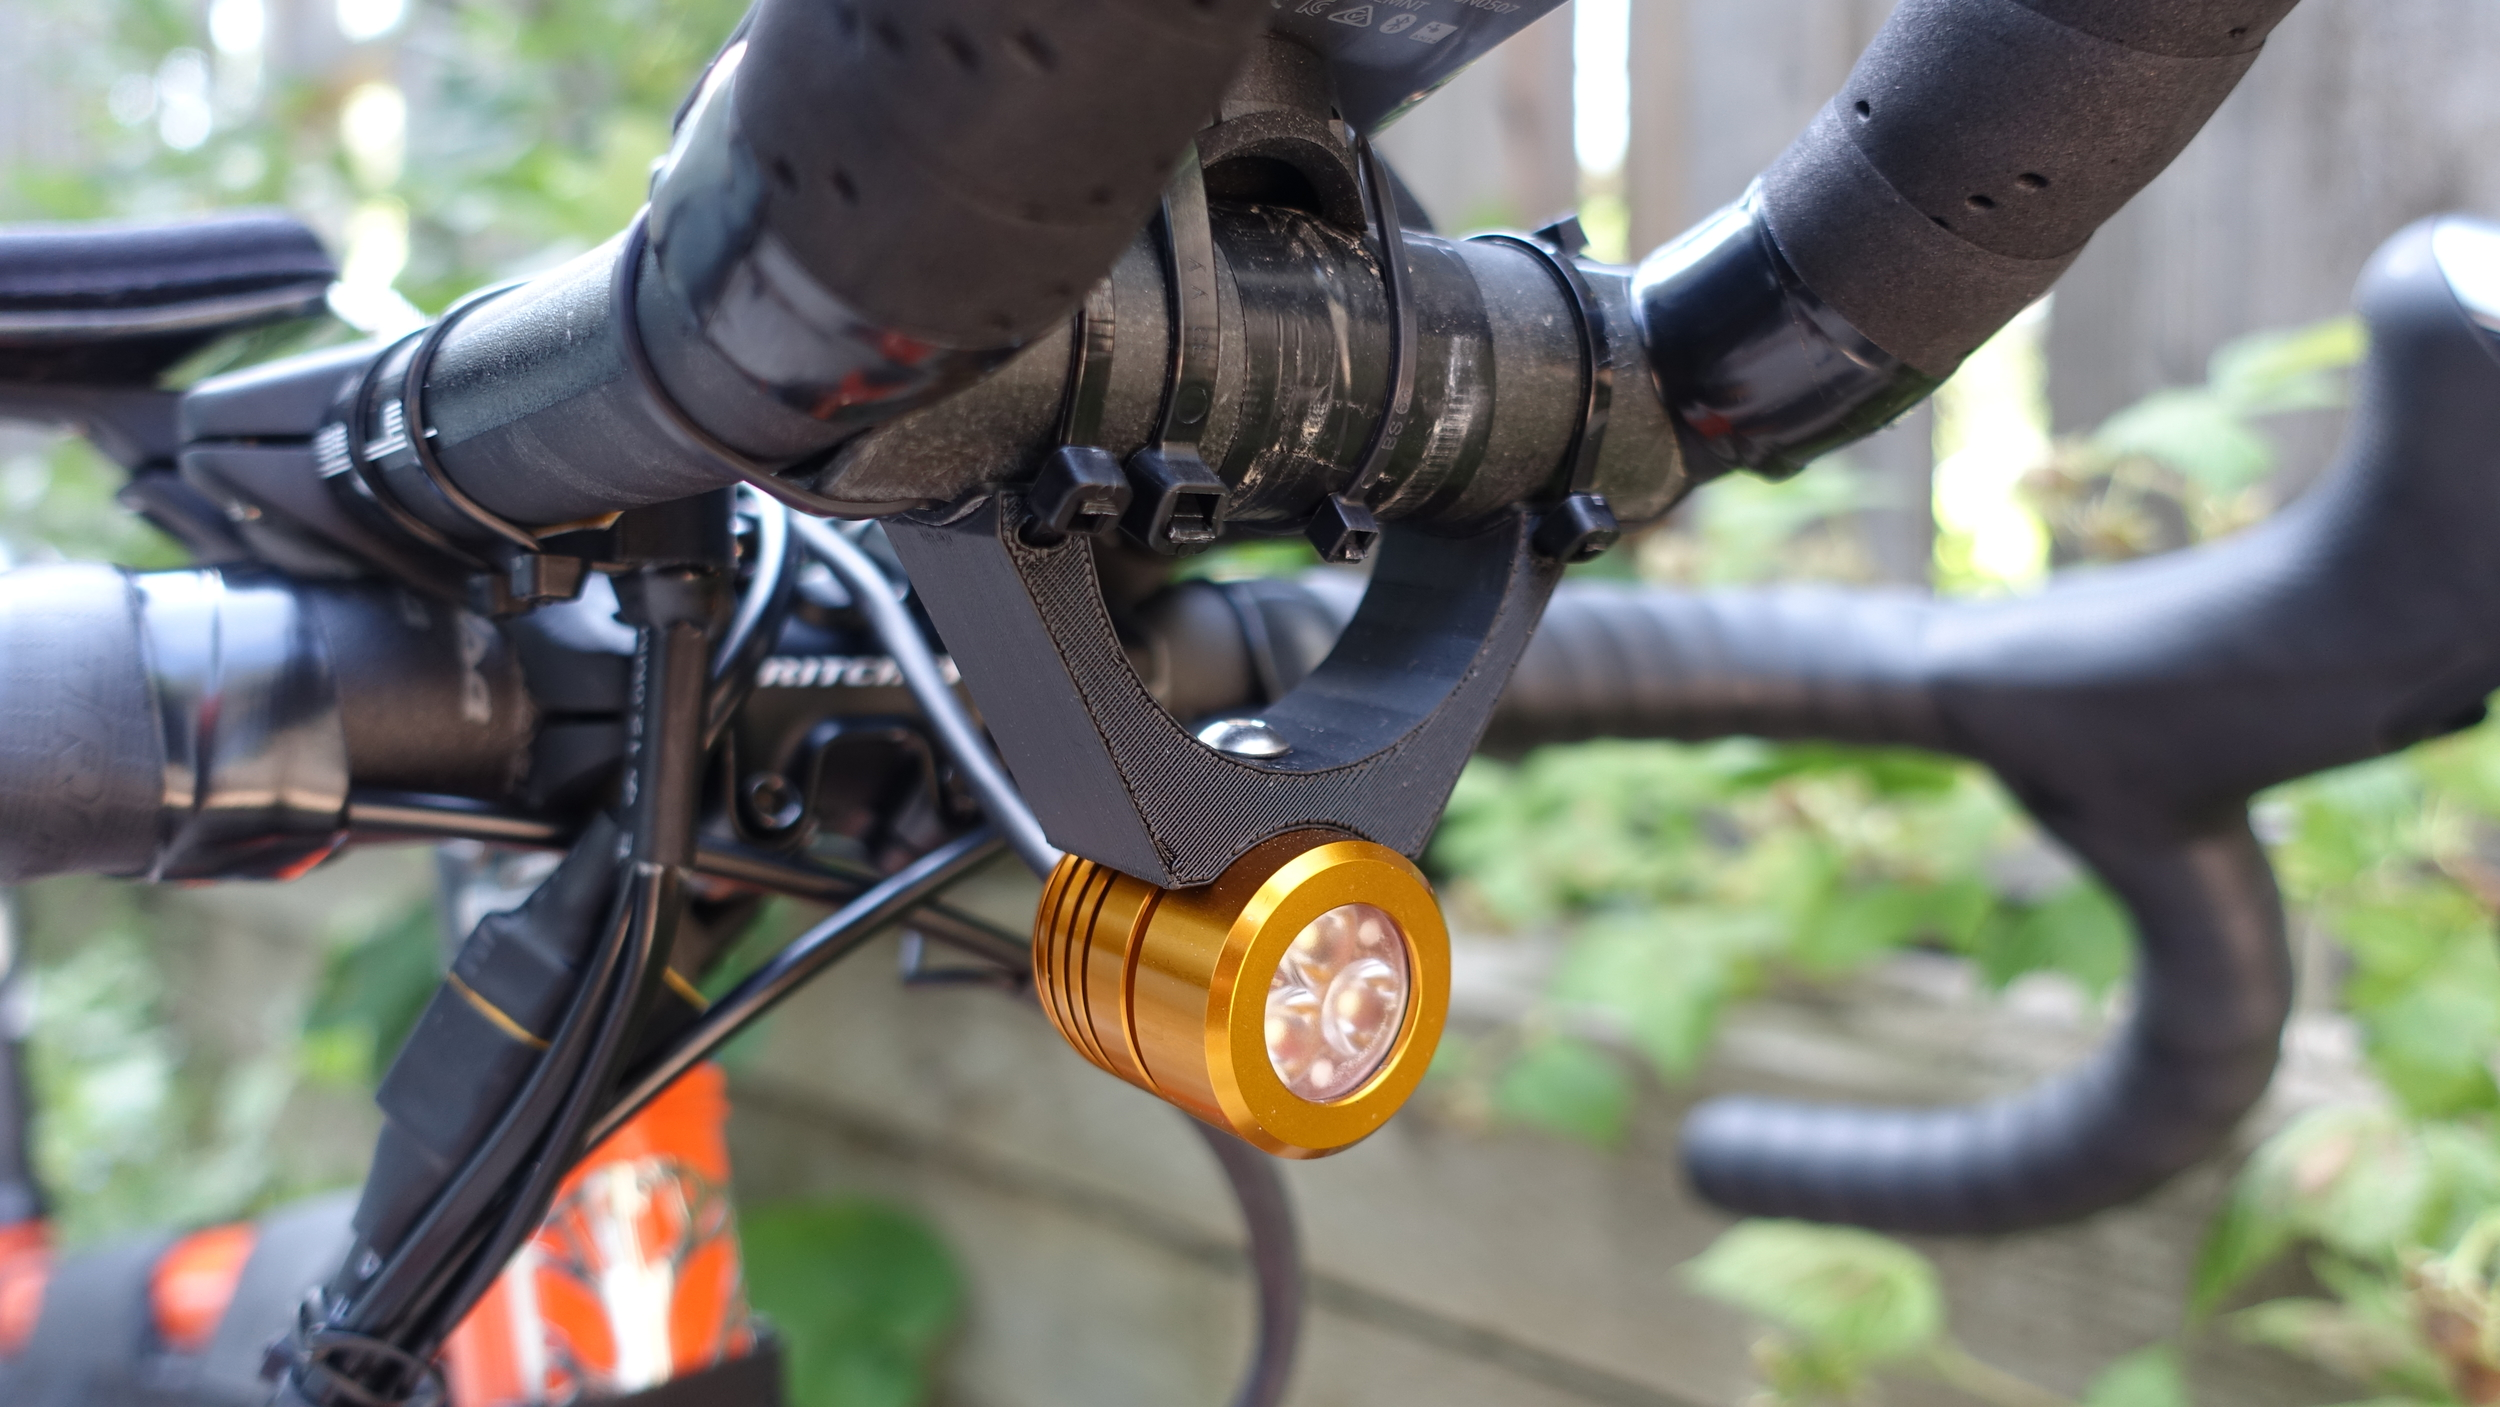 Kerry Straite produces K-Lites, incredibly powerful dynamo lights, handy switches and wiring harnesses designed with bikepacking in mind. Can't wait to test them in the field!